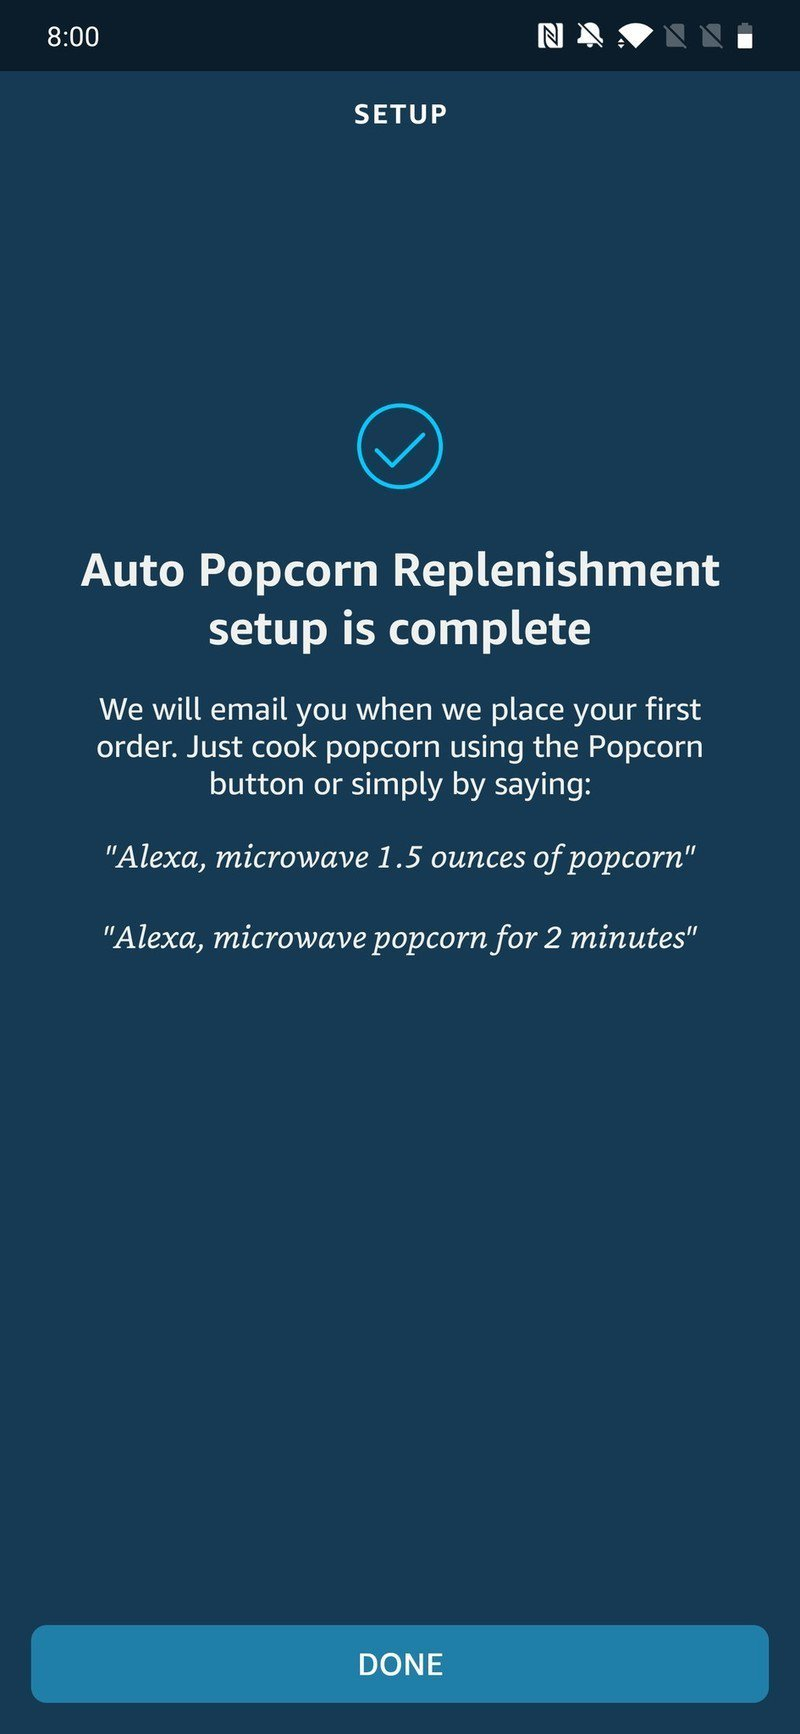 amazon-microwave-popcorn-how-to-9.jpg?it